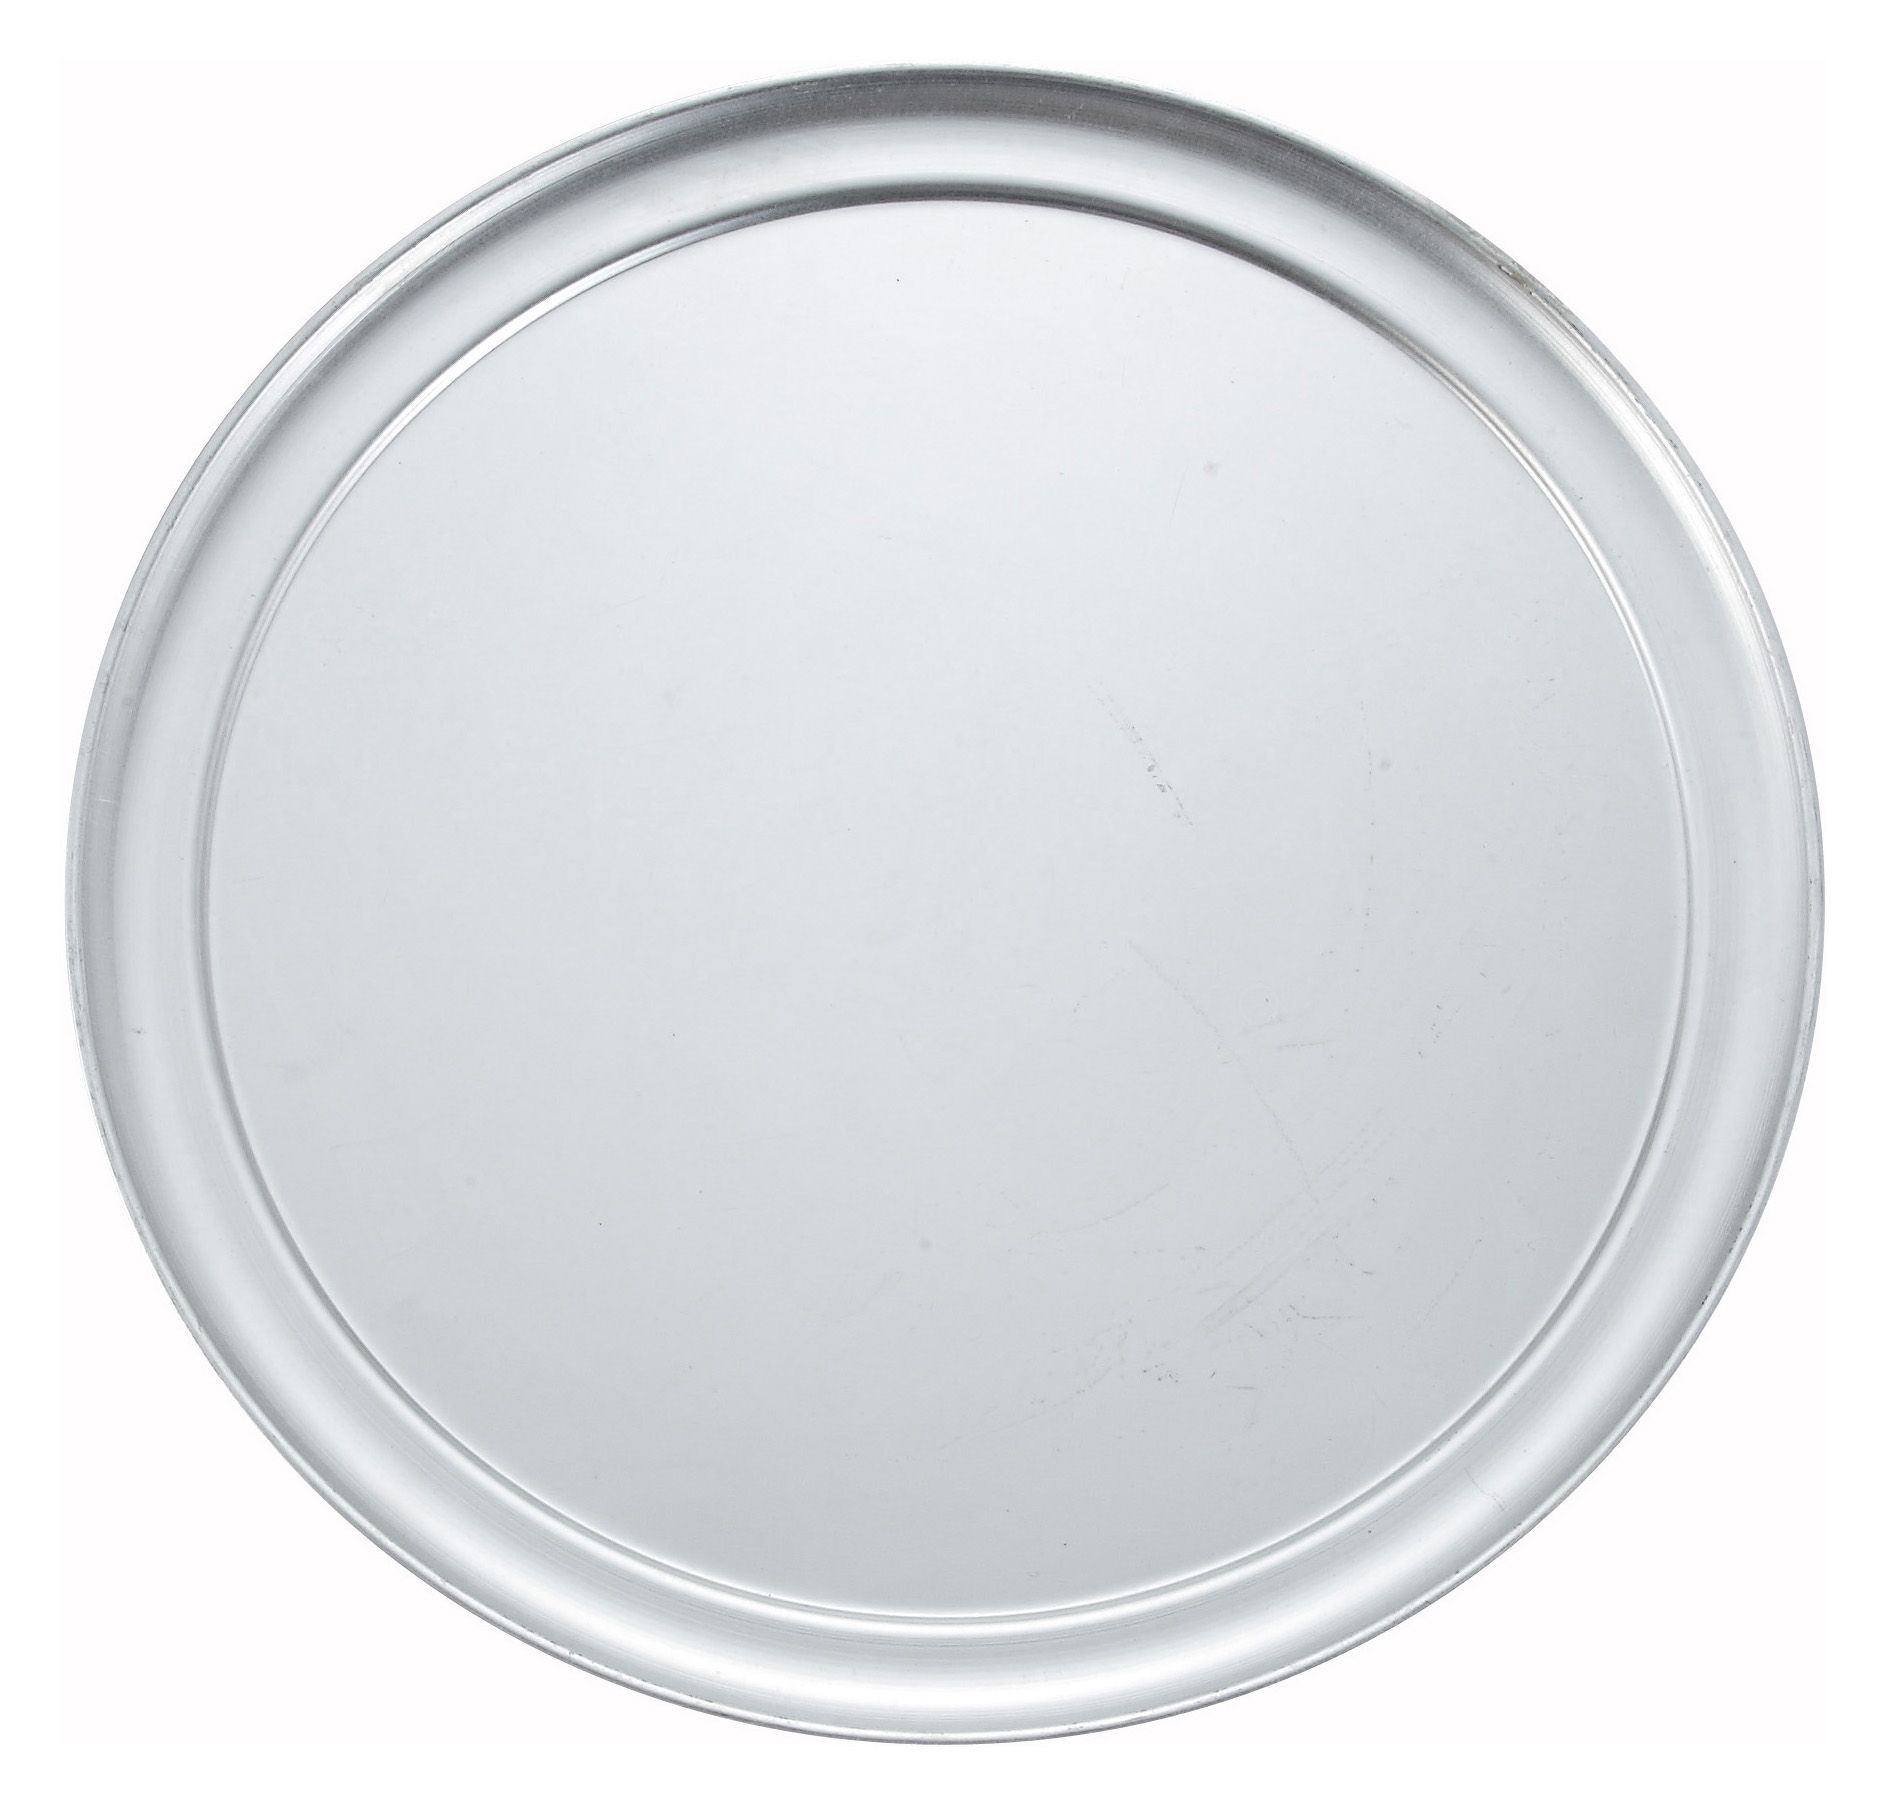 Wide-Rimmed Aluminum Pizza Pan - 13